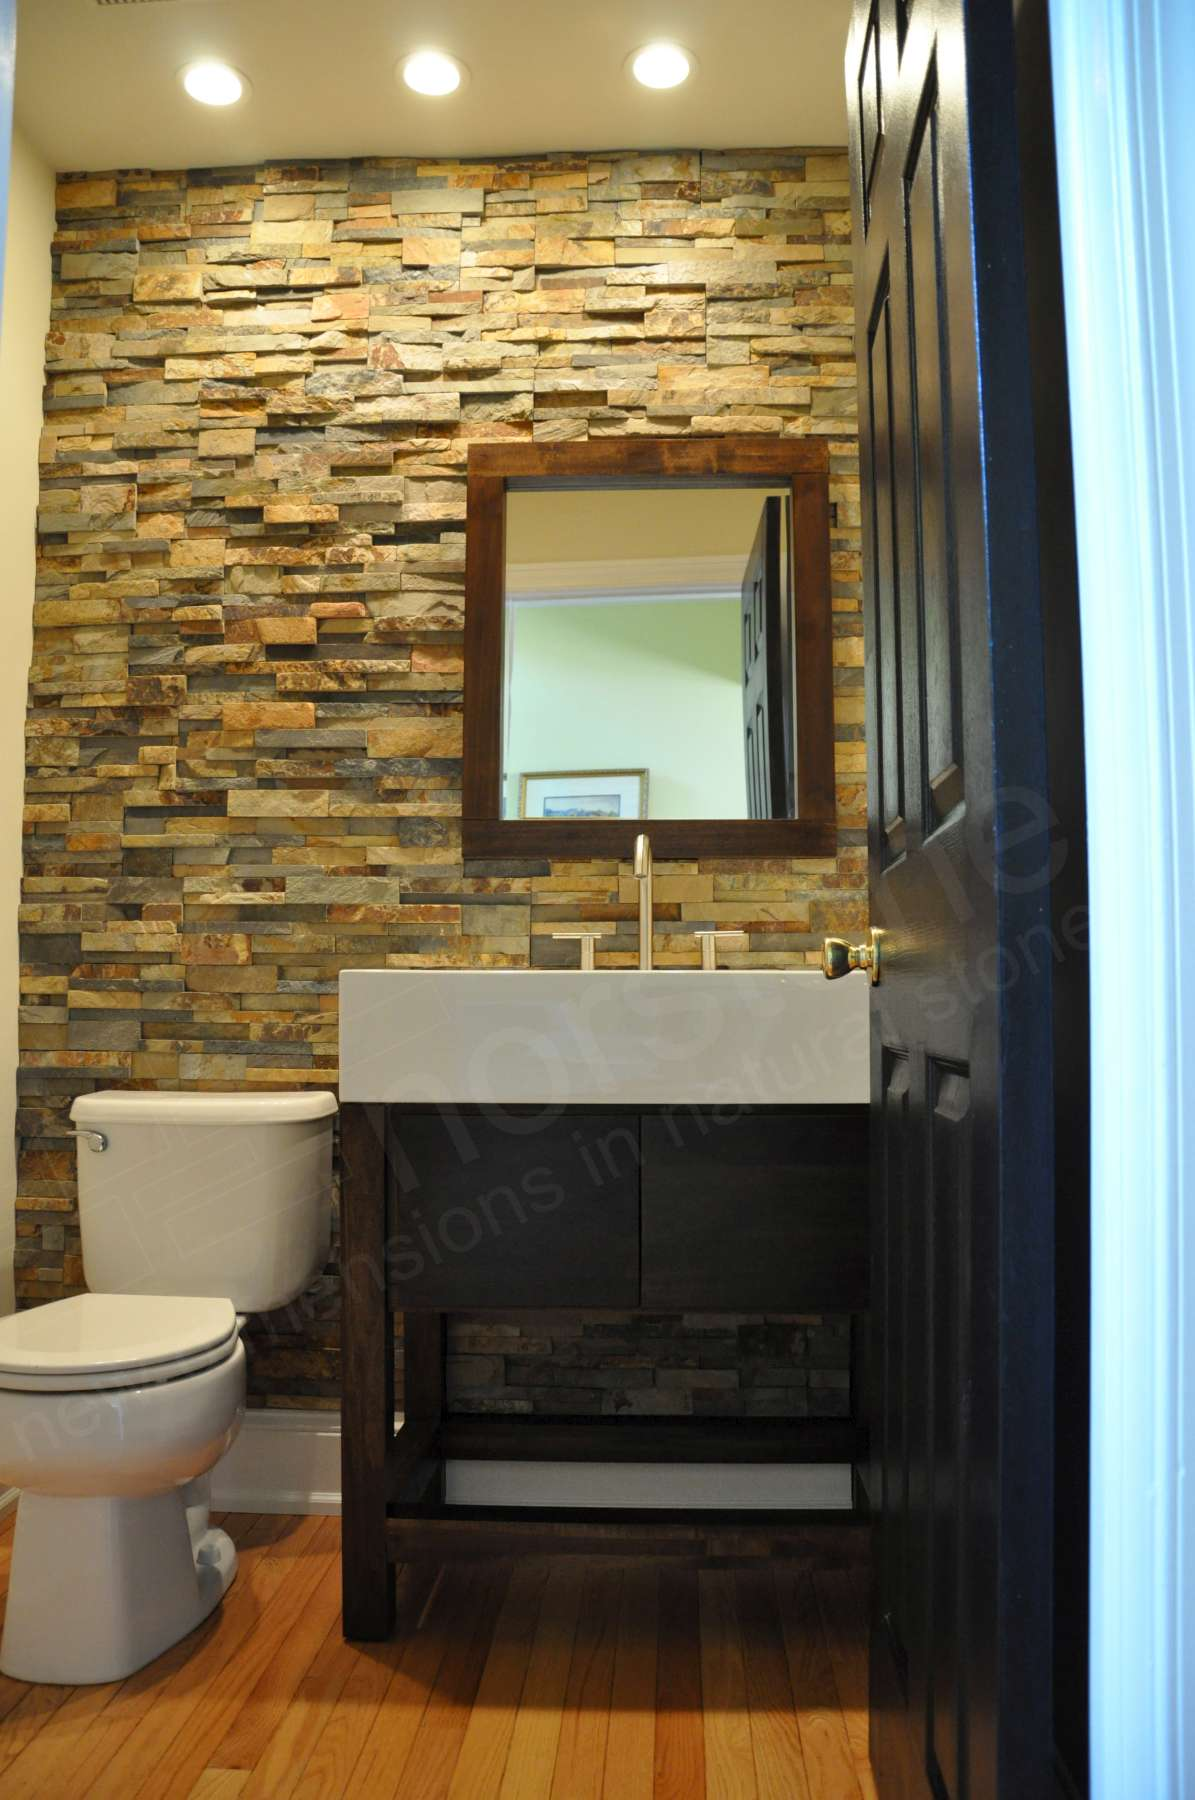 Norstone Stacked Stone Ochre Rock Panel Feature Wall in a Powder Bath